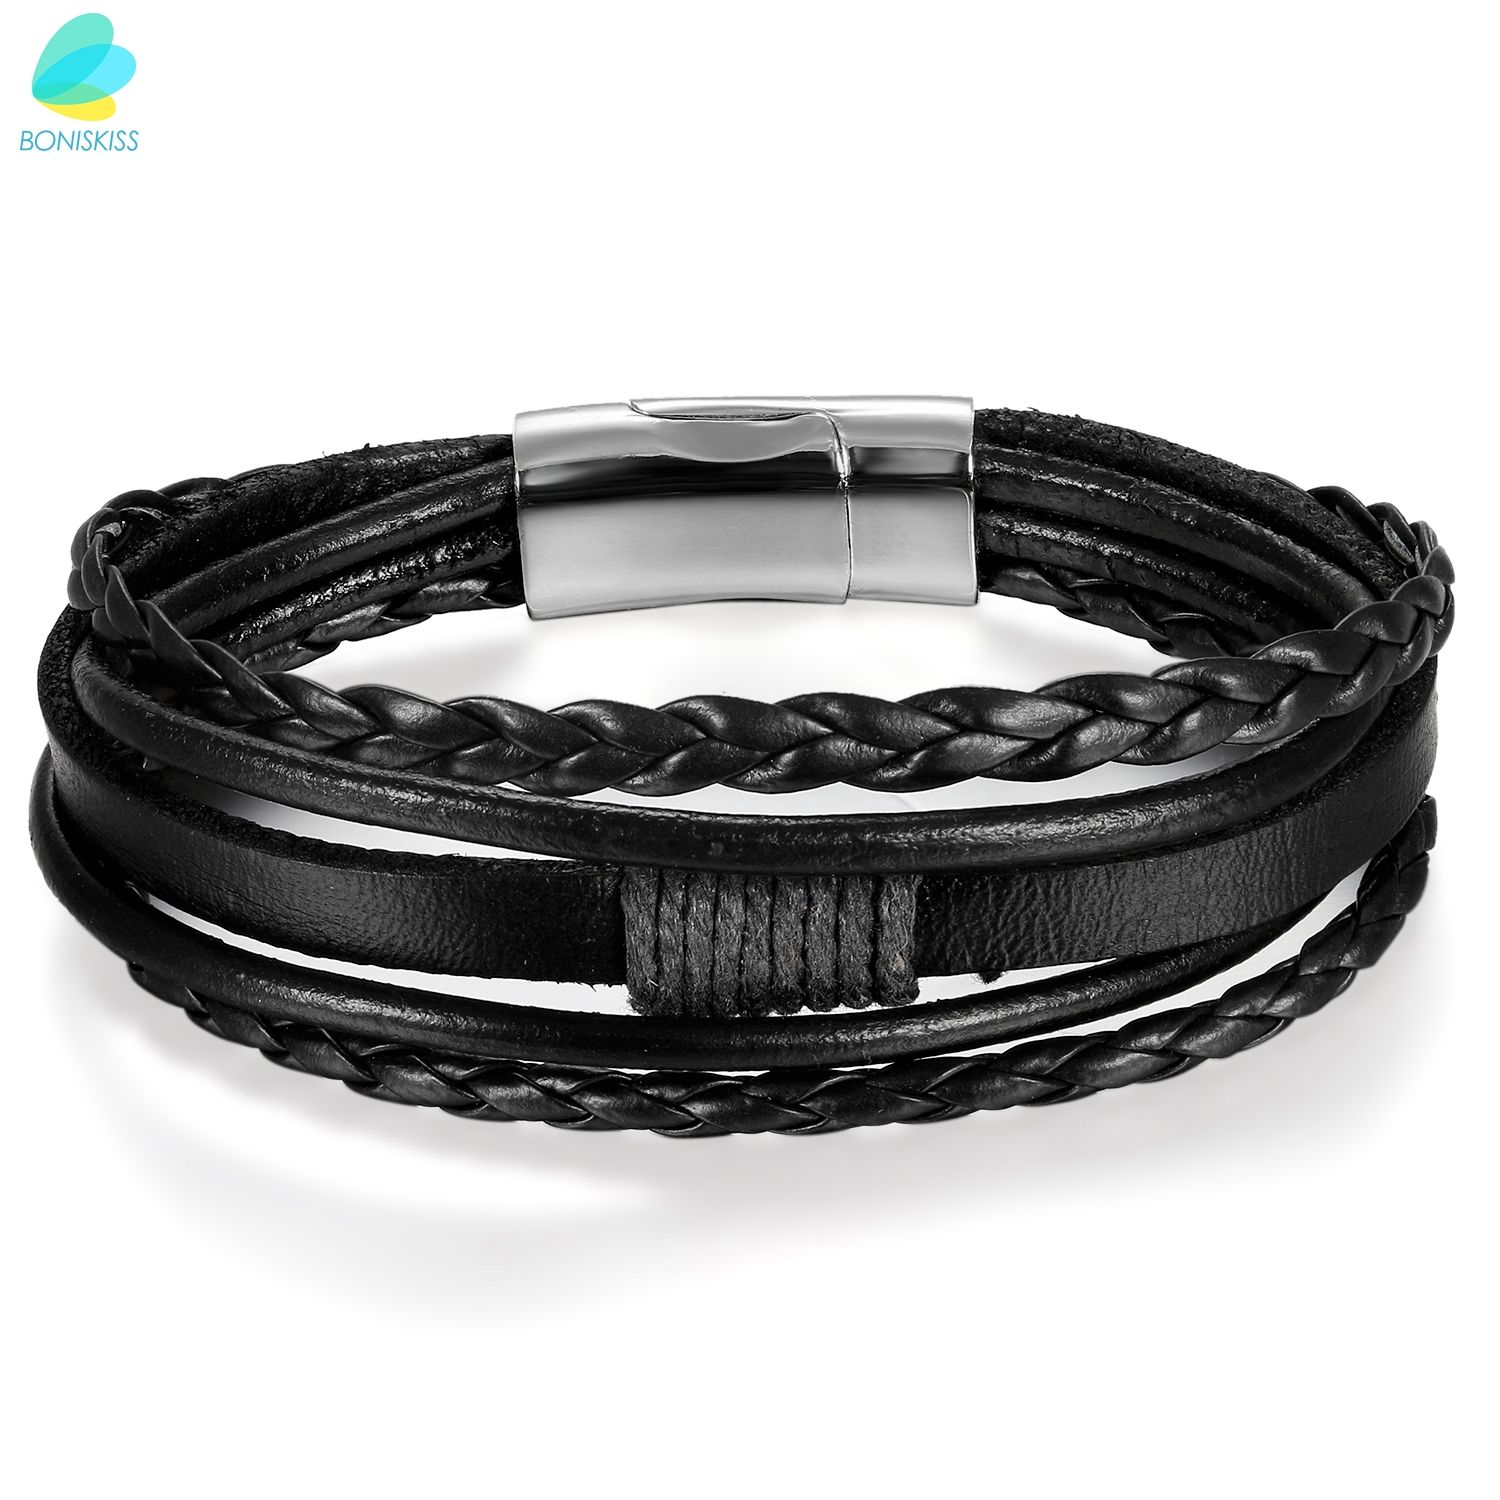 BONISKISS Black Brown Five Layer Hand Made PU Leather Woven Bracelet Bangle